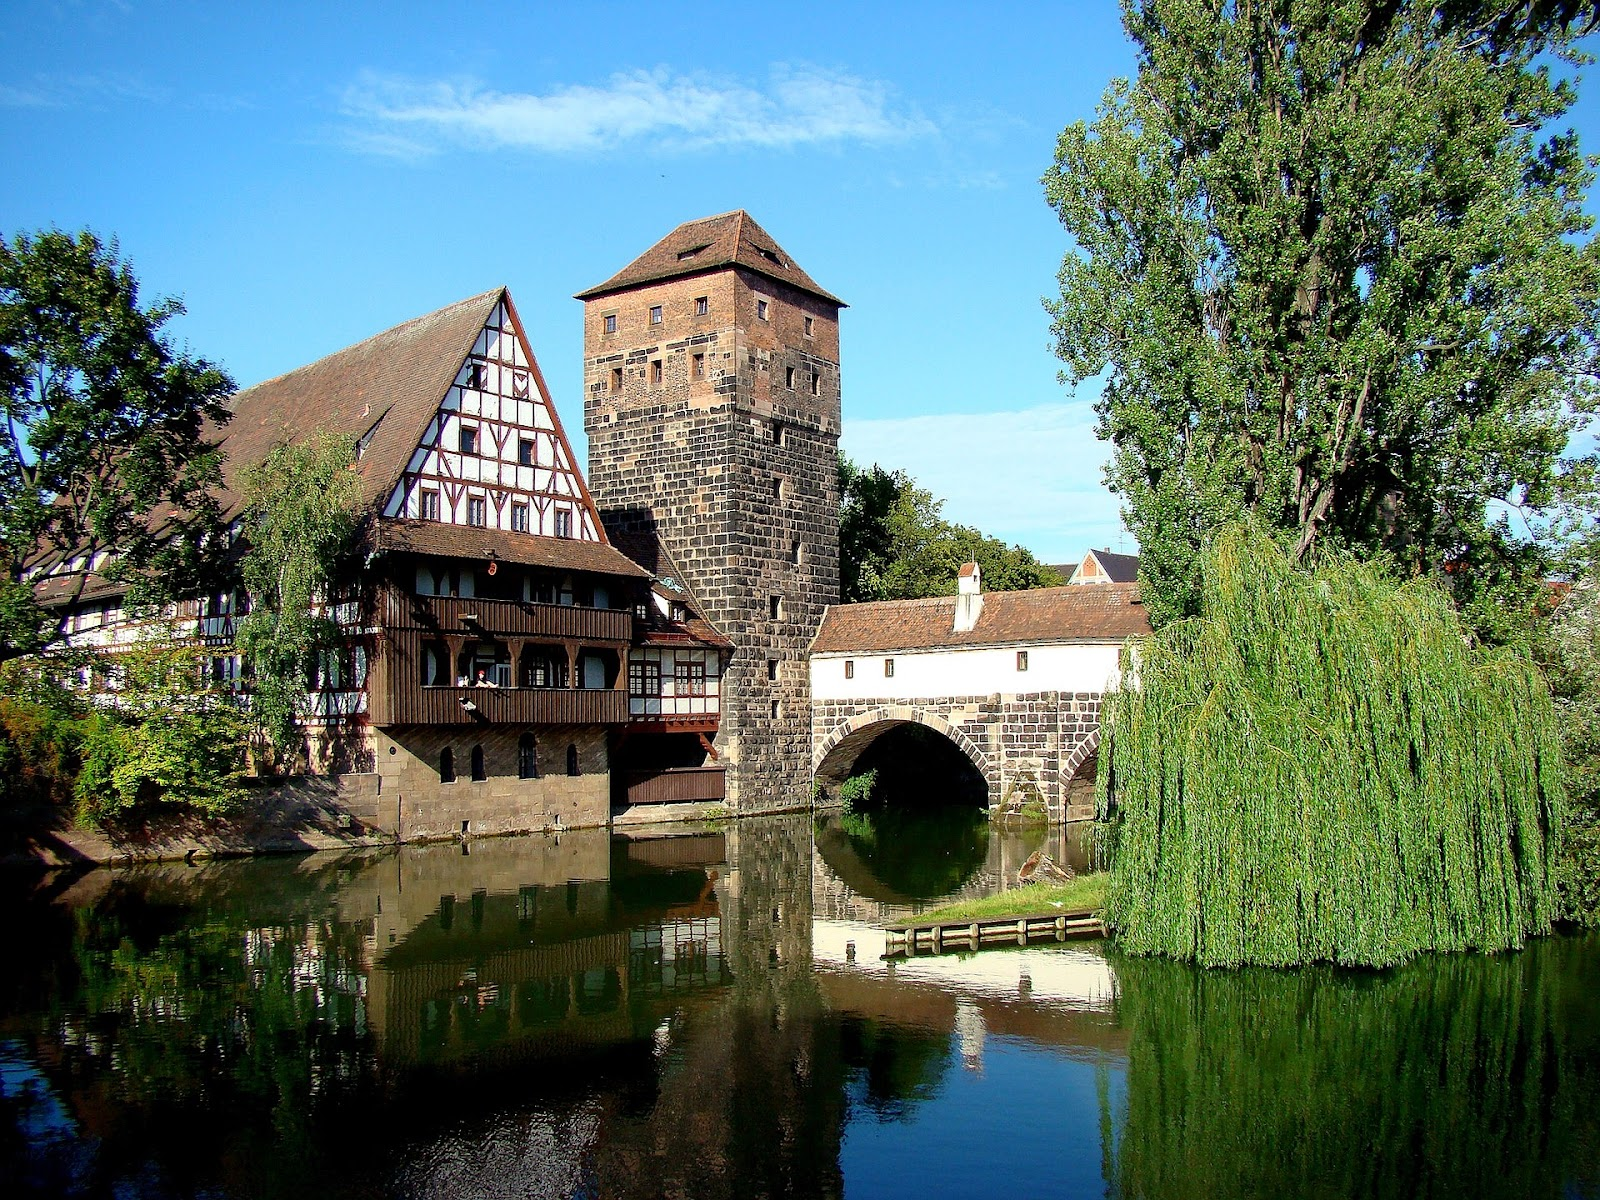 nuremberg medieval weinstadel structure next to river and green trees on a hot sunny day in germany